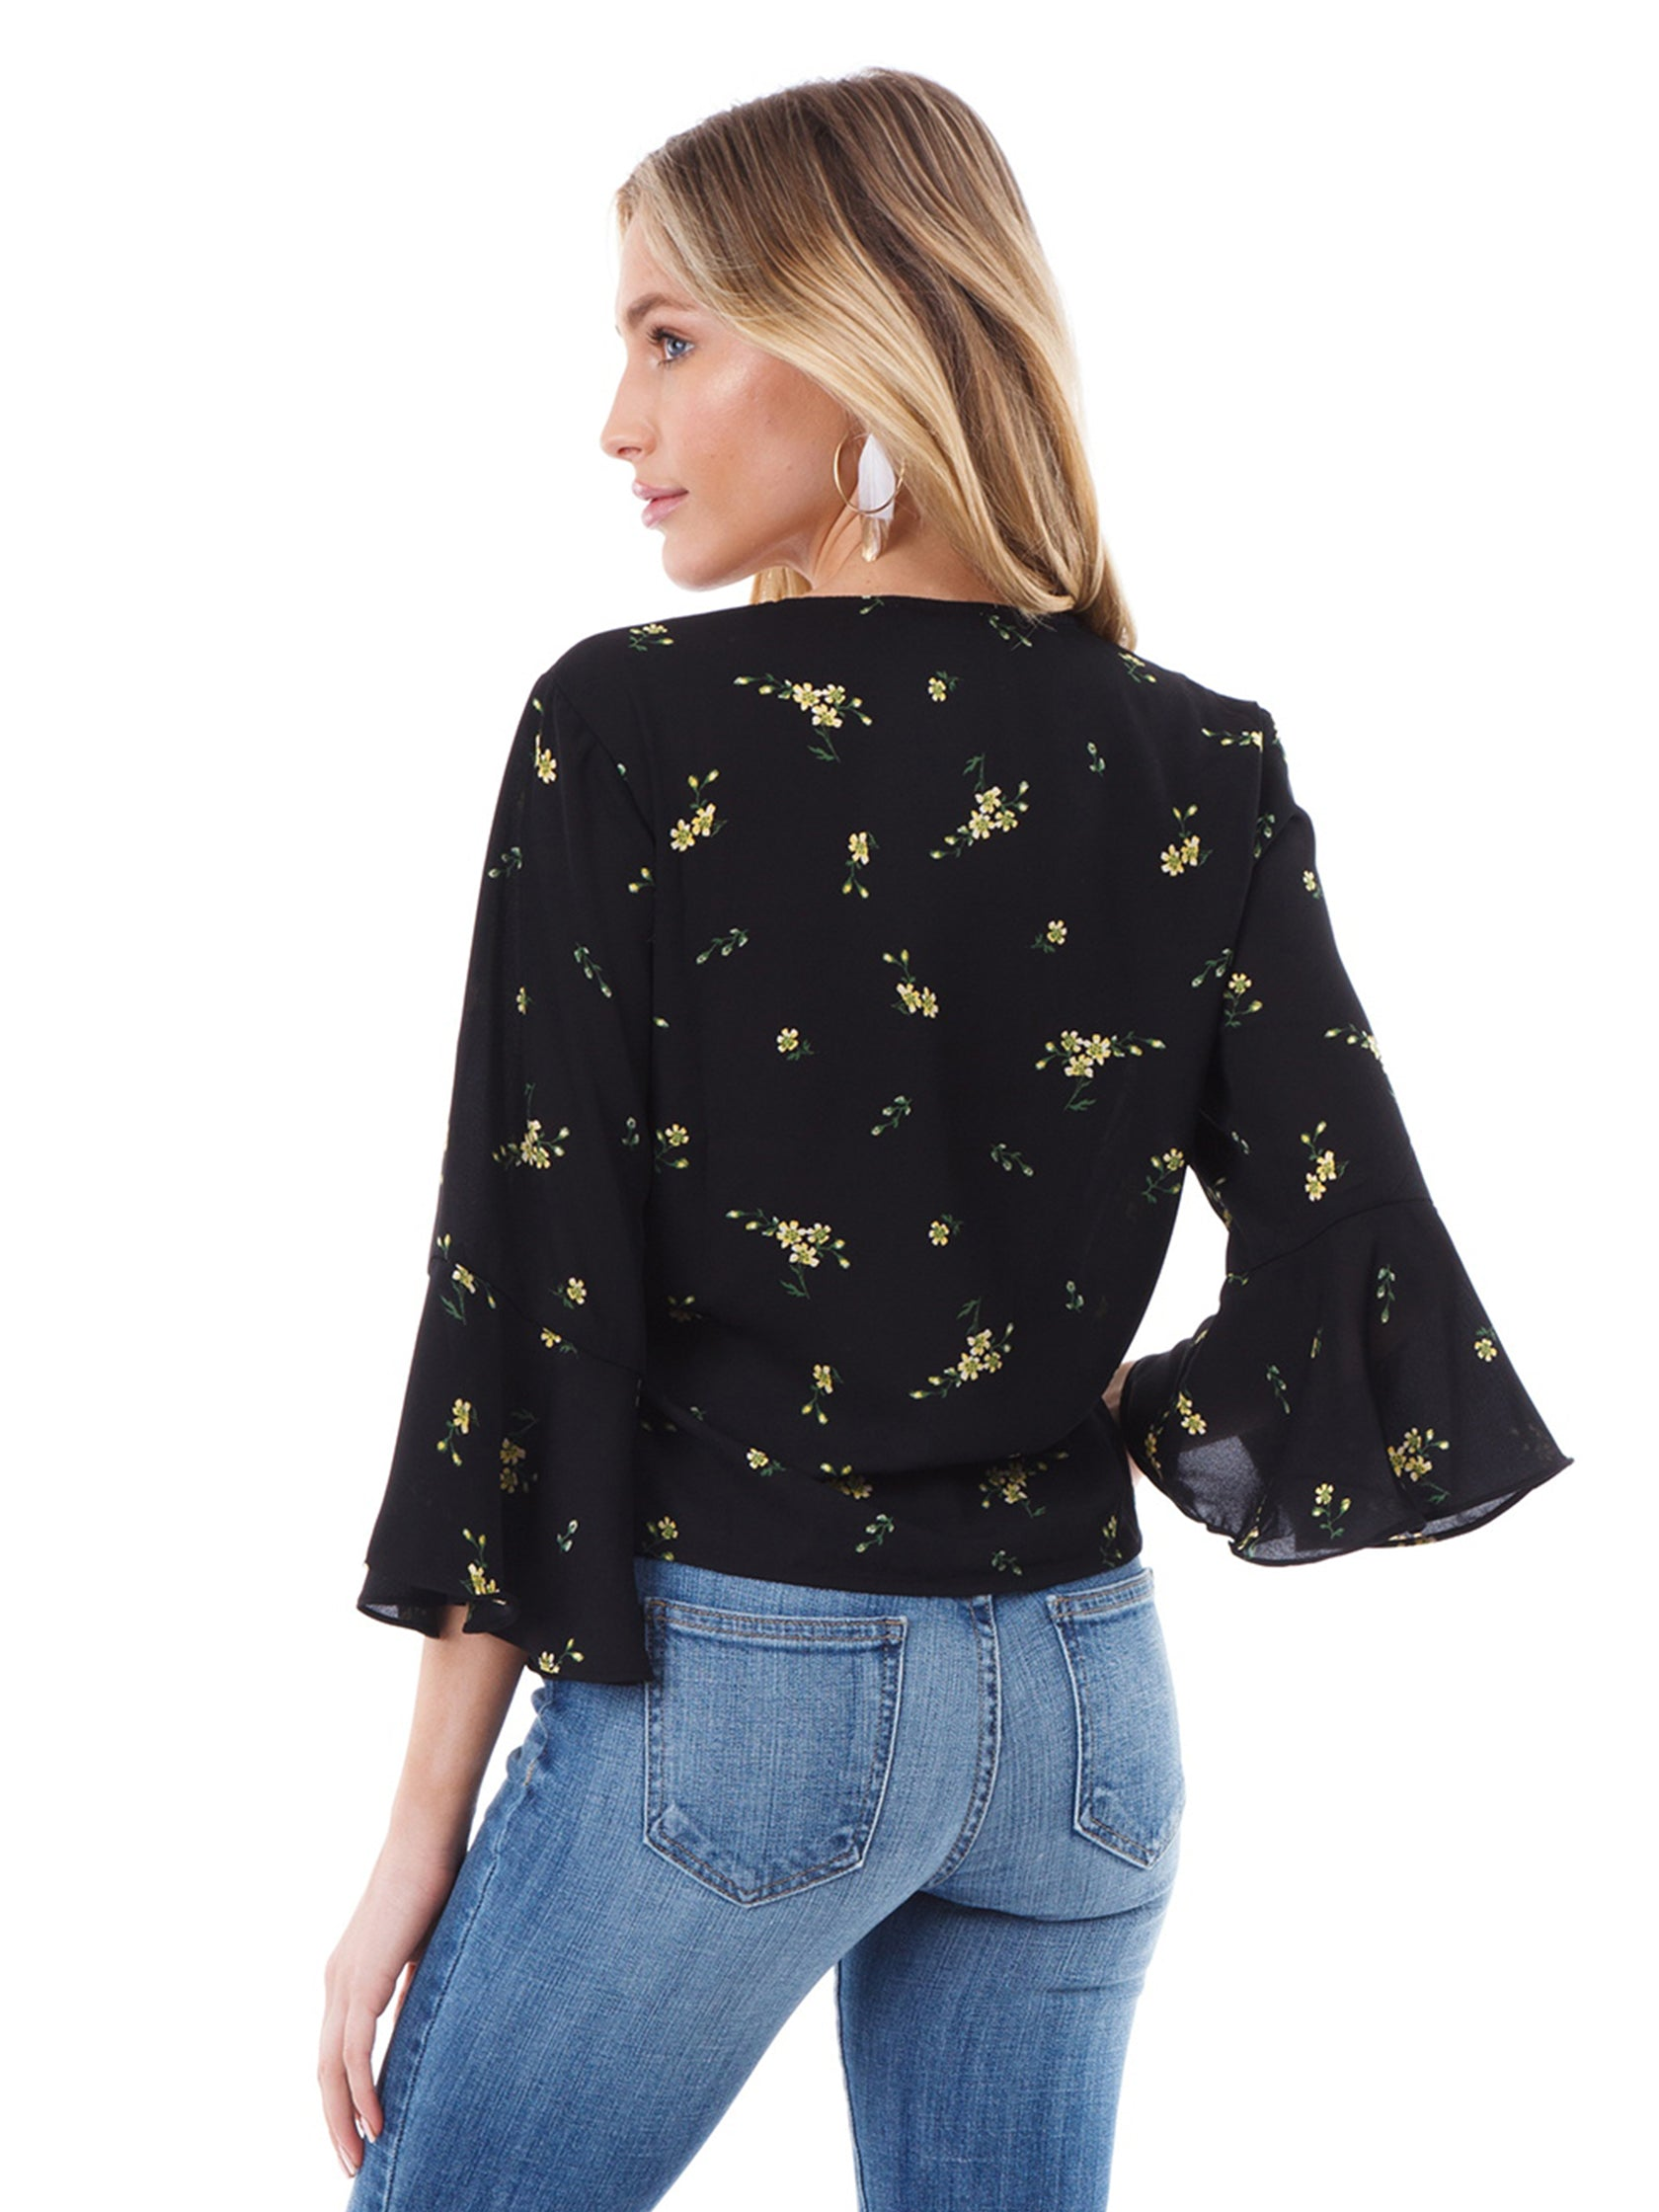 Women outfit in a top rental from Lush called Floral Tie Front Blouse